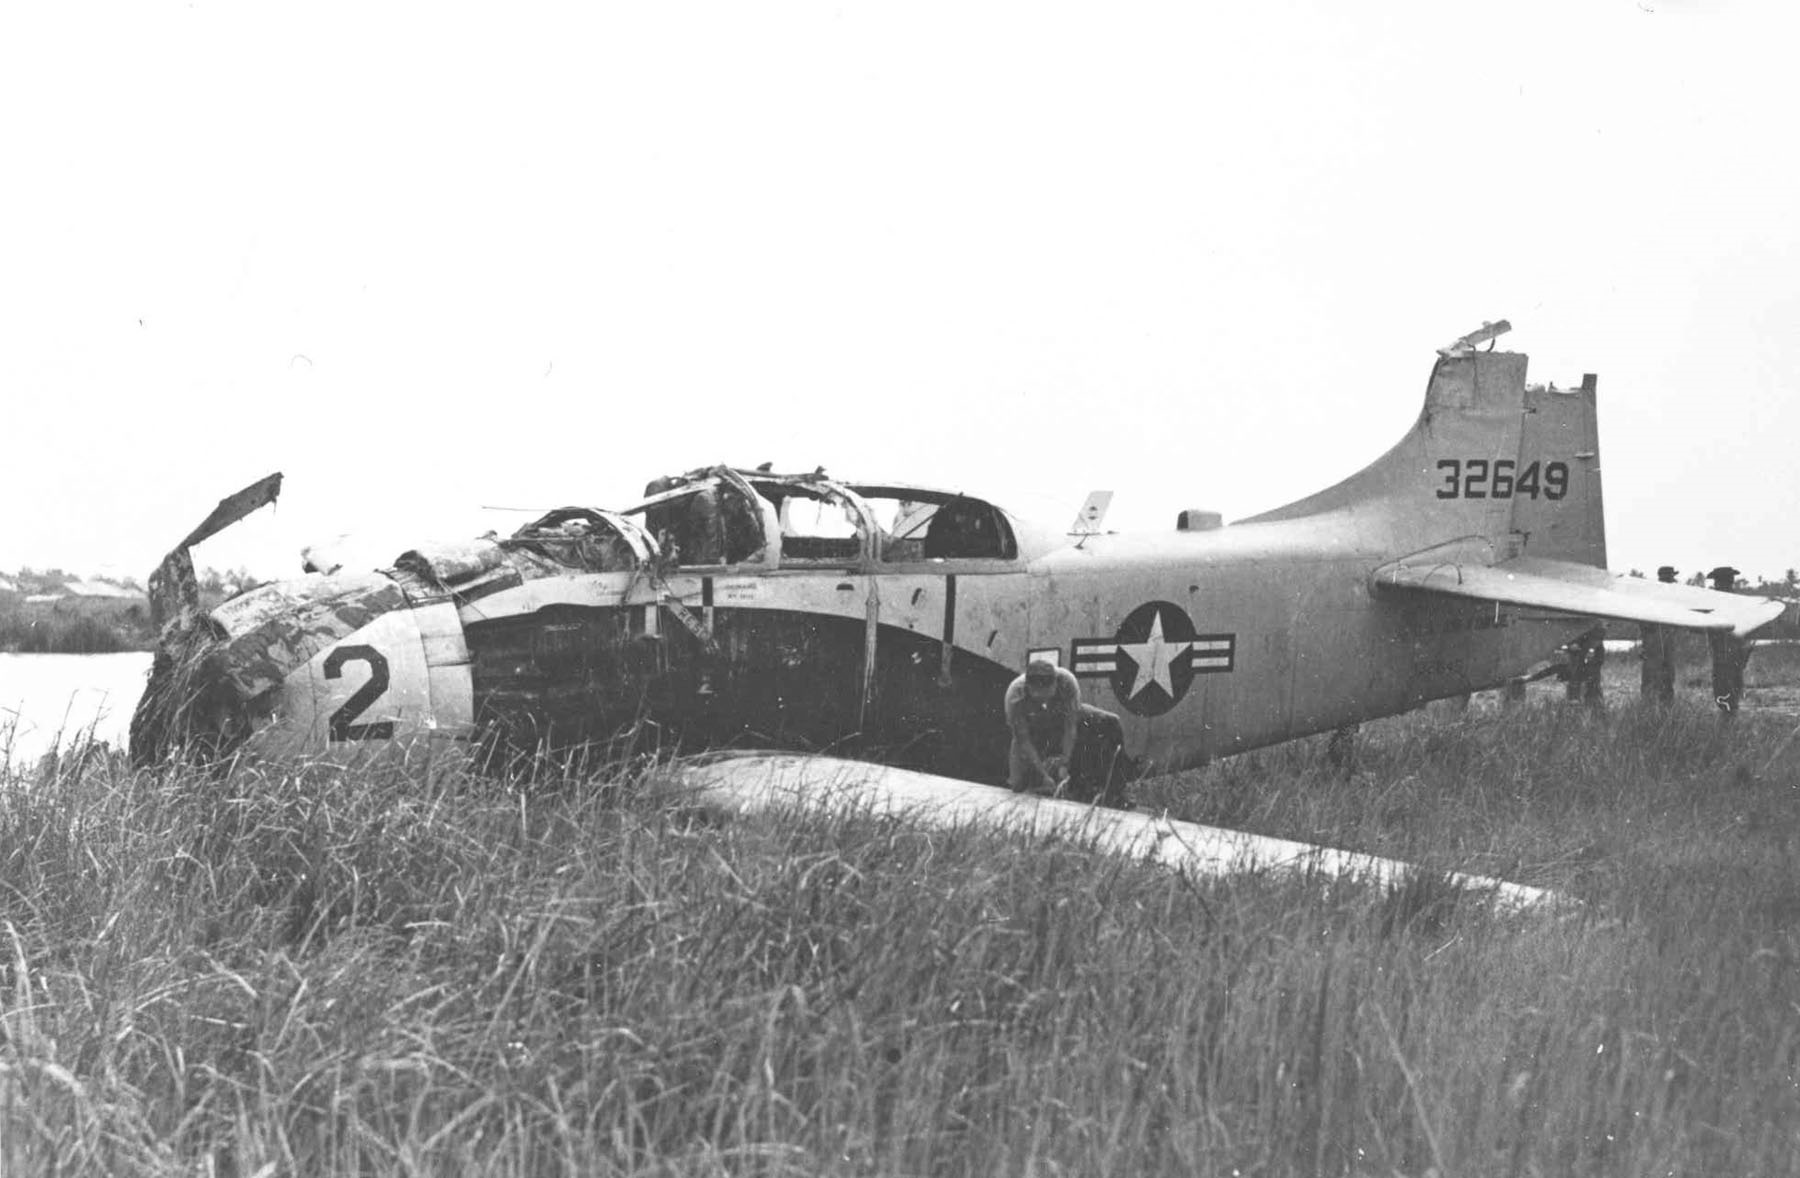 The incredible story of the Skyraider pilot who landed his SPAD on a besieged airstrip to rescue another crash-landed A-1 pilot